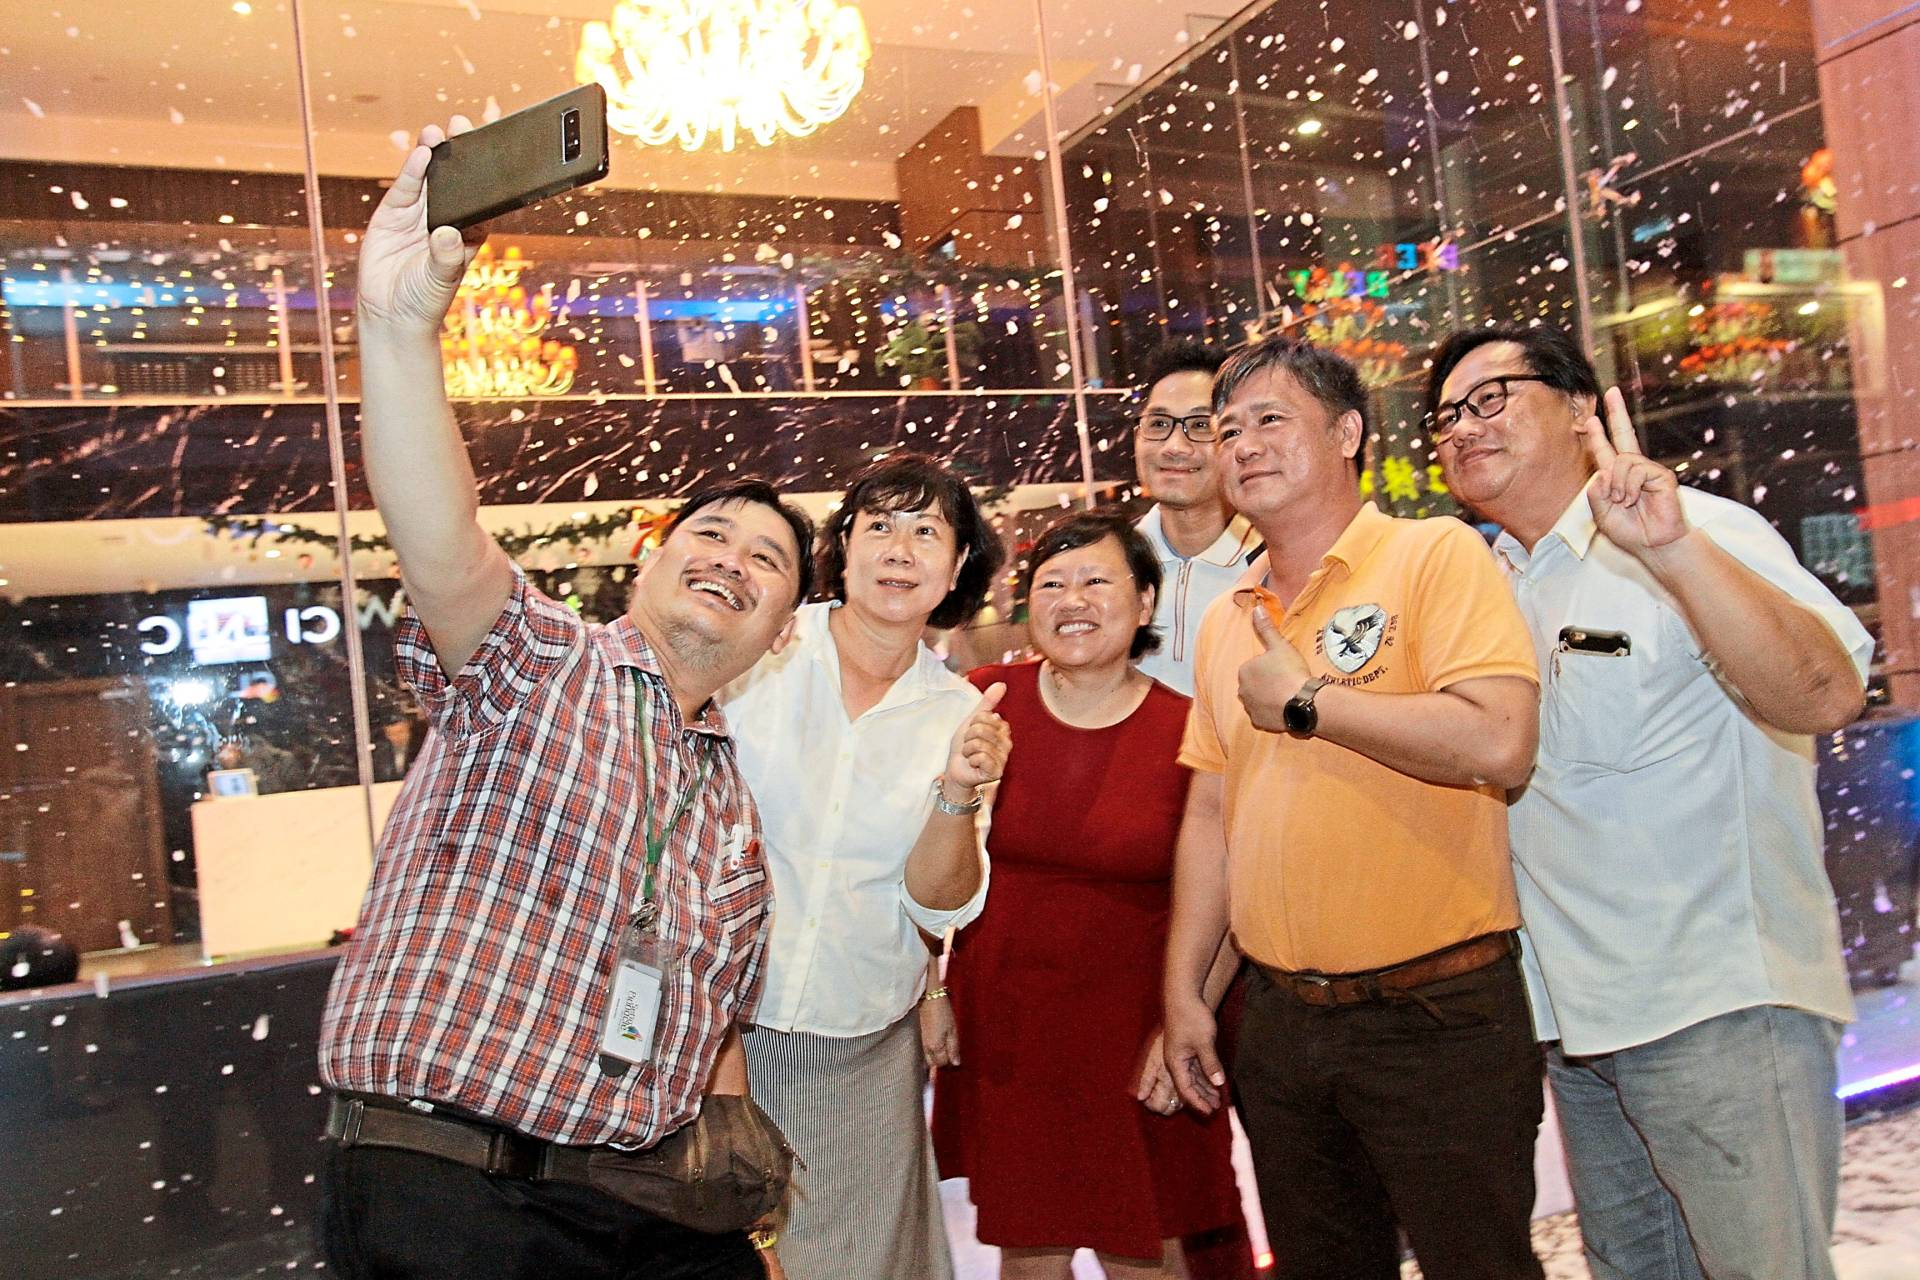 Media folk celebrating the happy occasion with a wefie. — Photos: CHAN BOON KAI/The Star